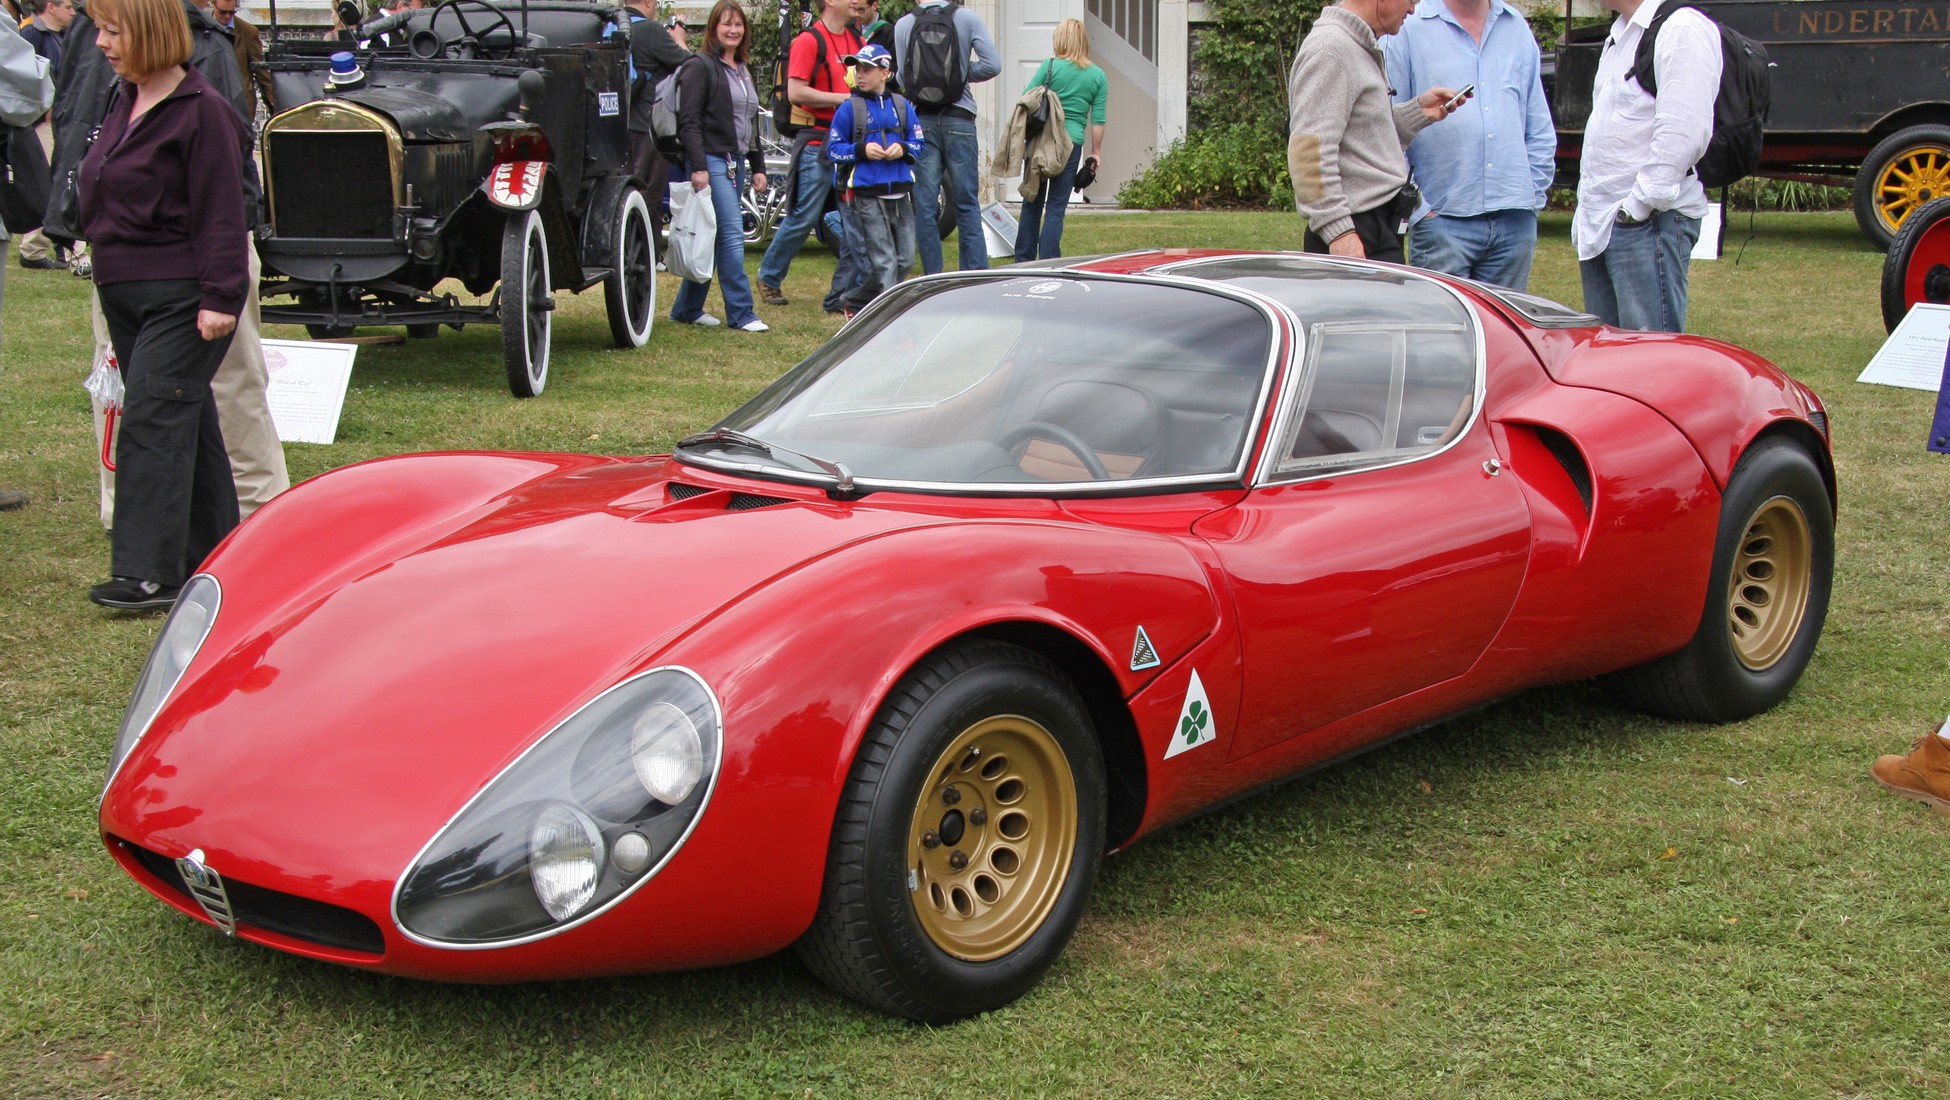 The Best Alfa Romeo Classics According To Our Expert Catawiki